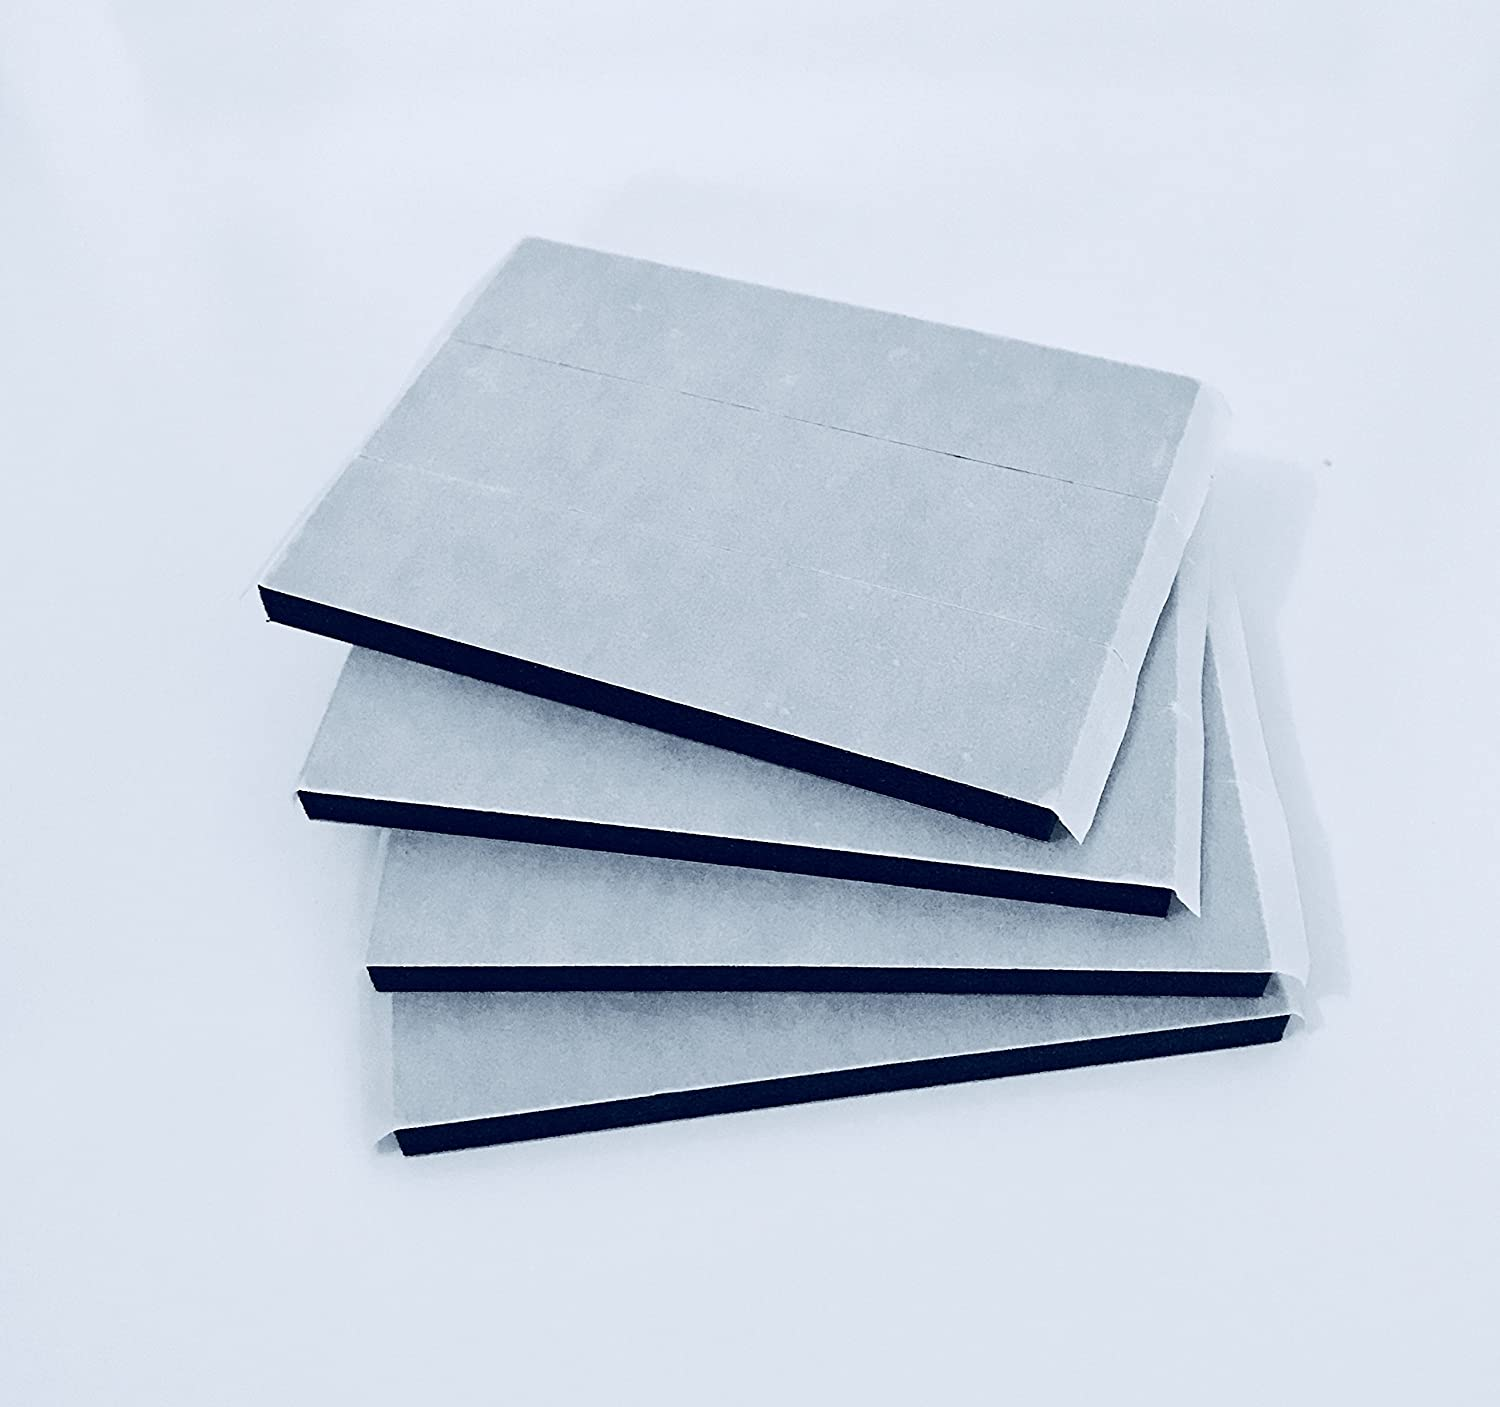 12 Number Plate Double Sided Foam Adhesive Fixing Pads Sticky Pads 6mm Oversized BEK-Trading Ltd